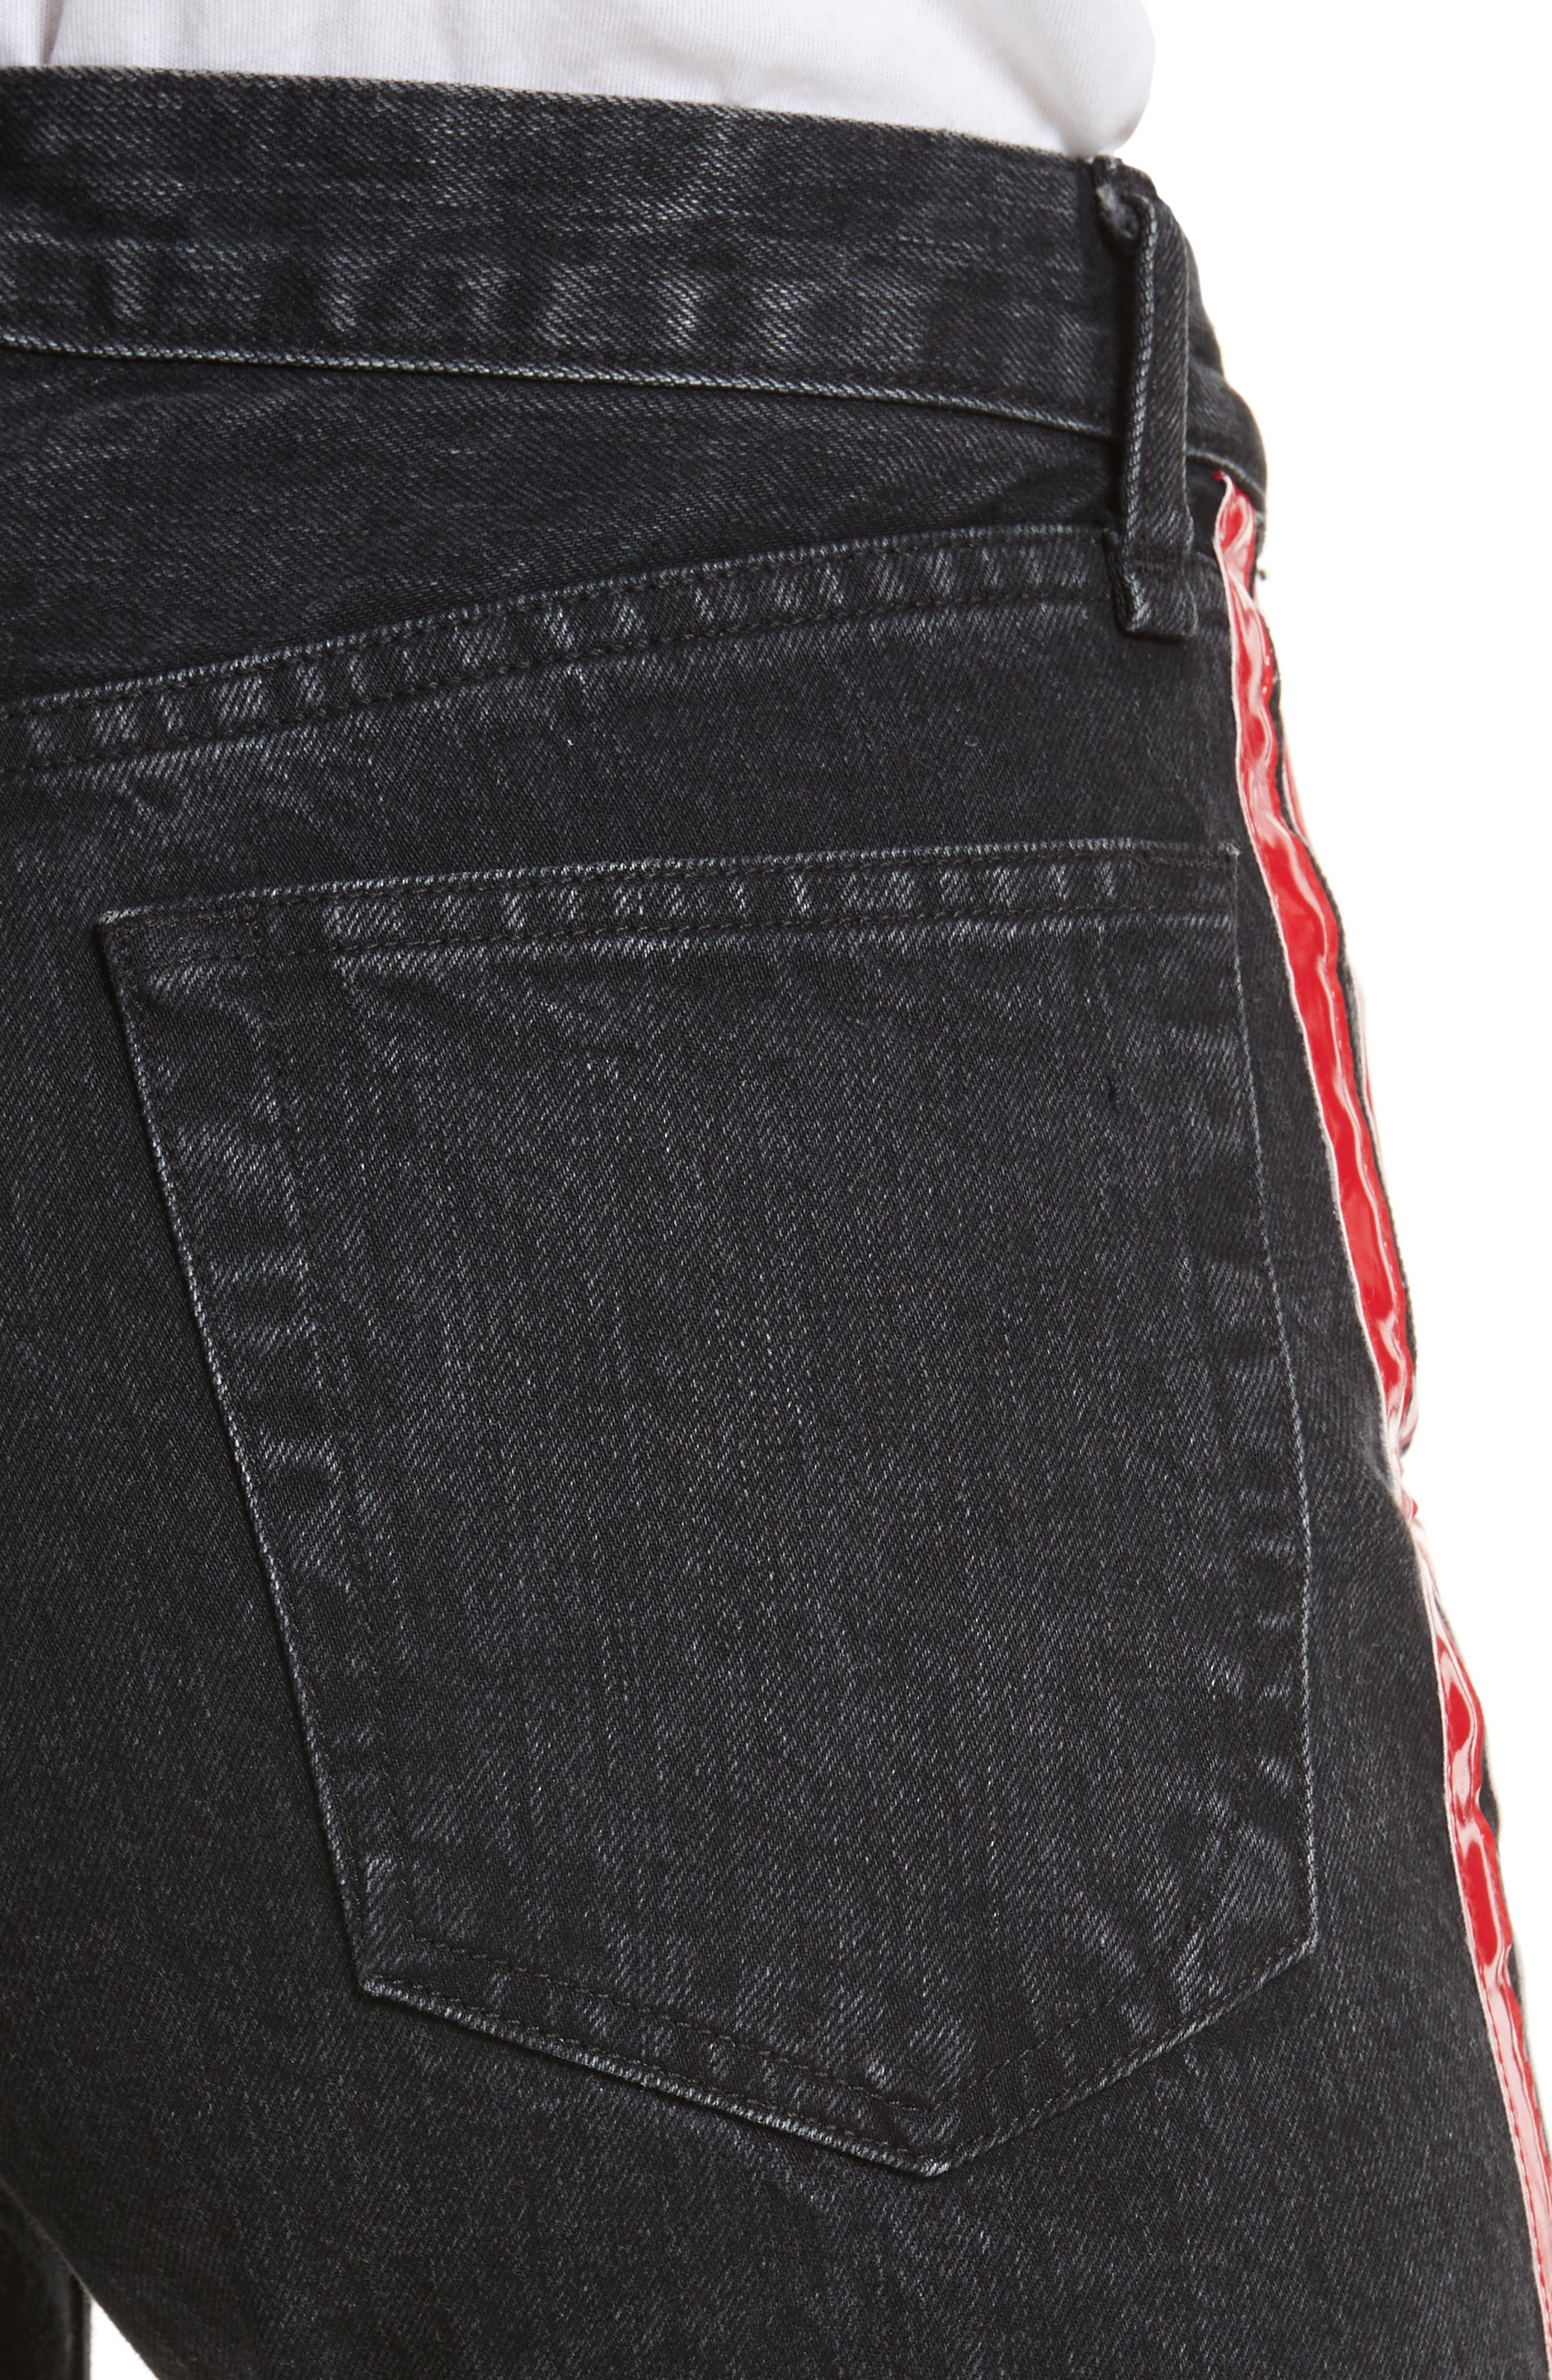 High Waist Straight Leg Jeans,                             Alternate thumbnail 4, color,                             Washed Black